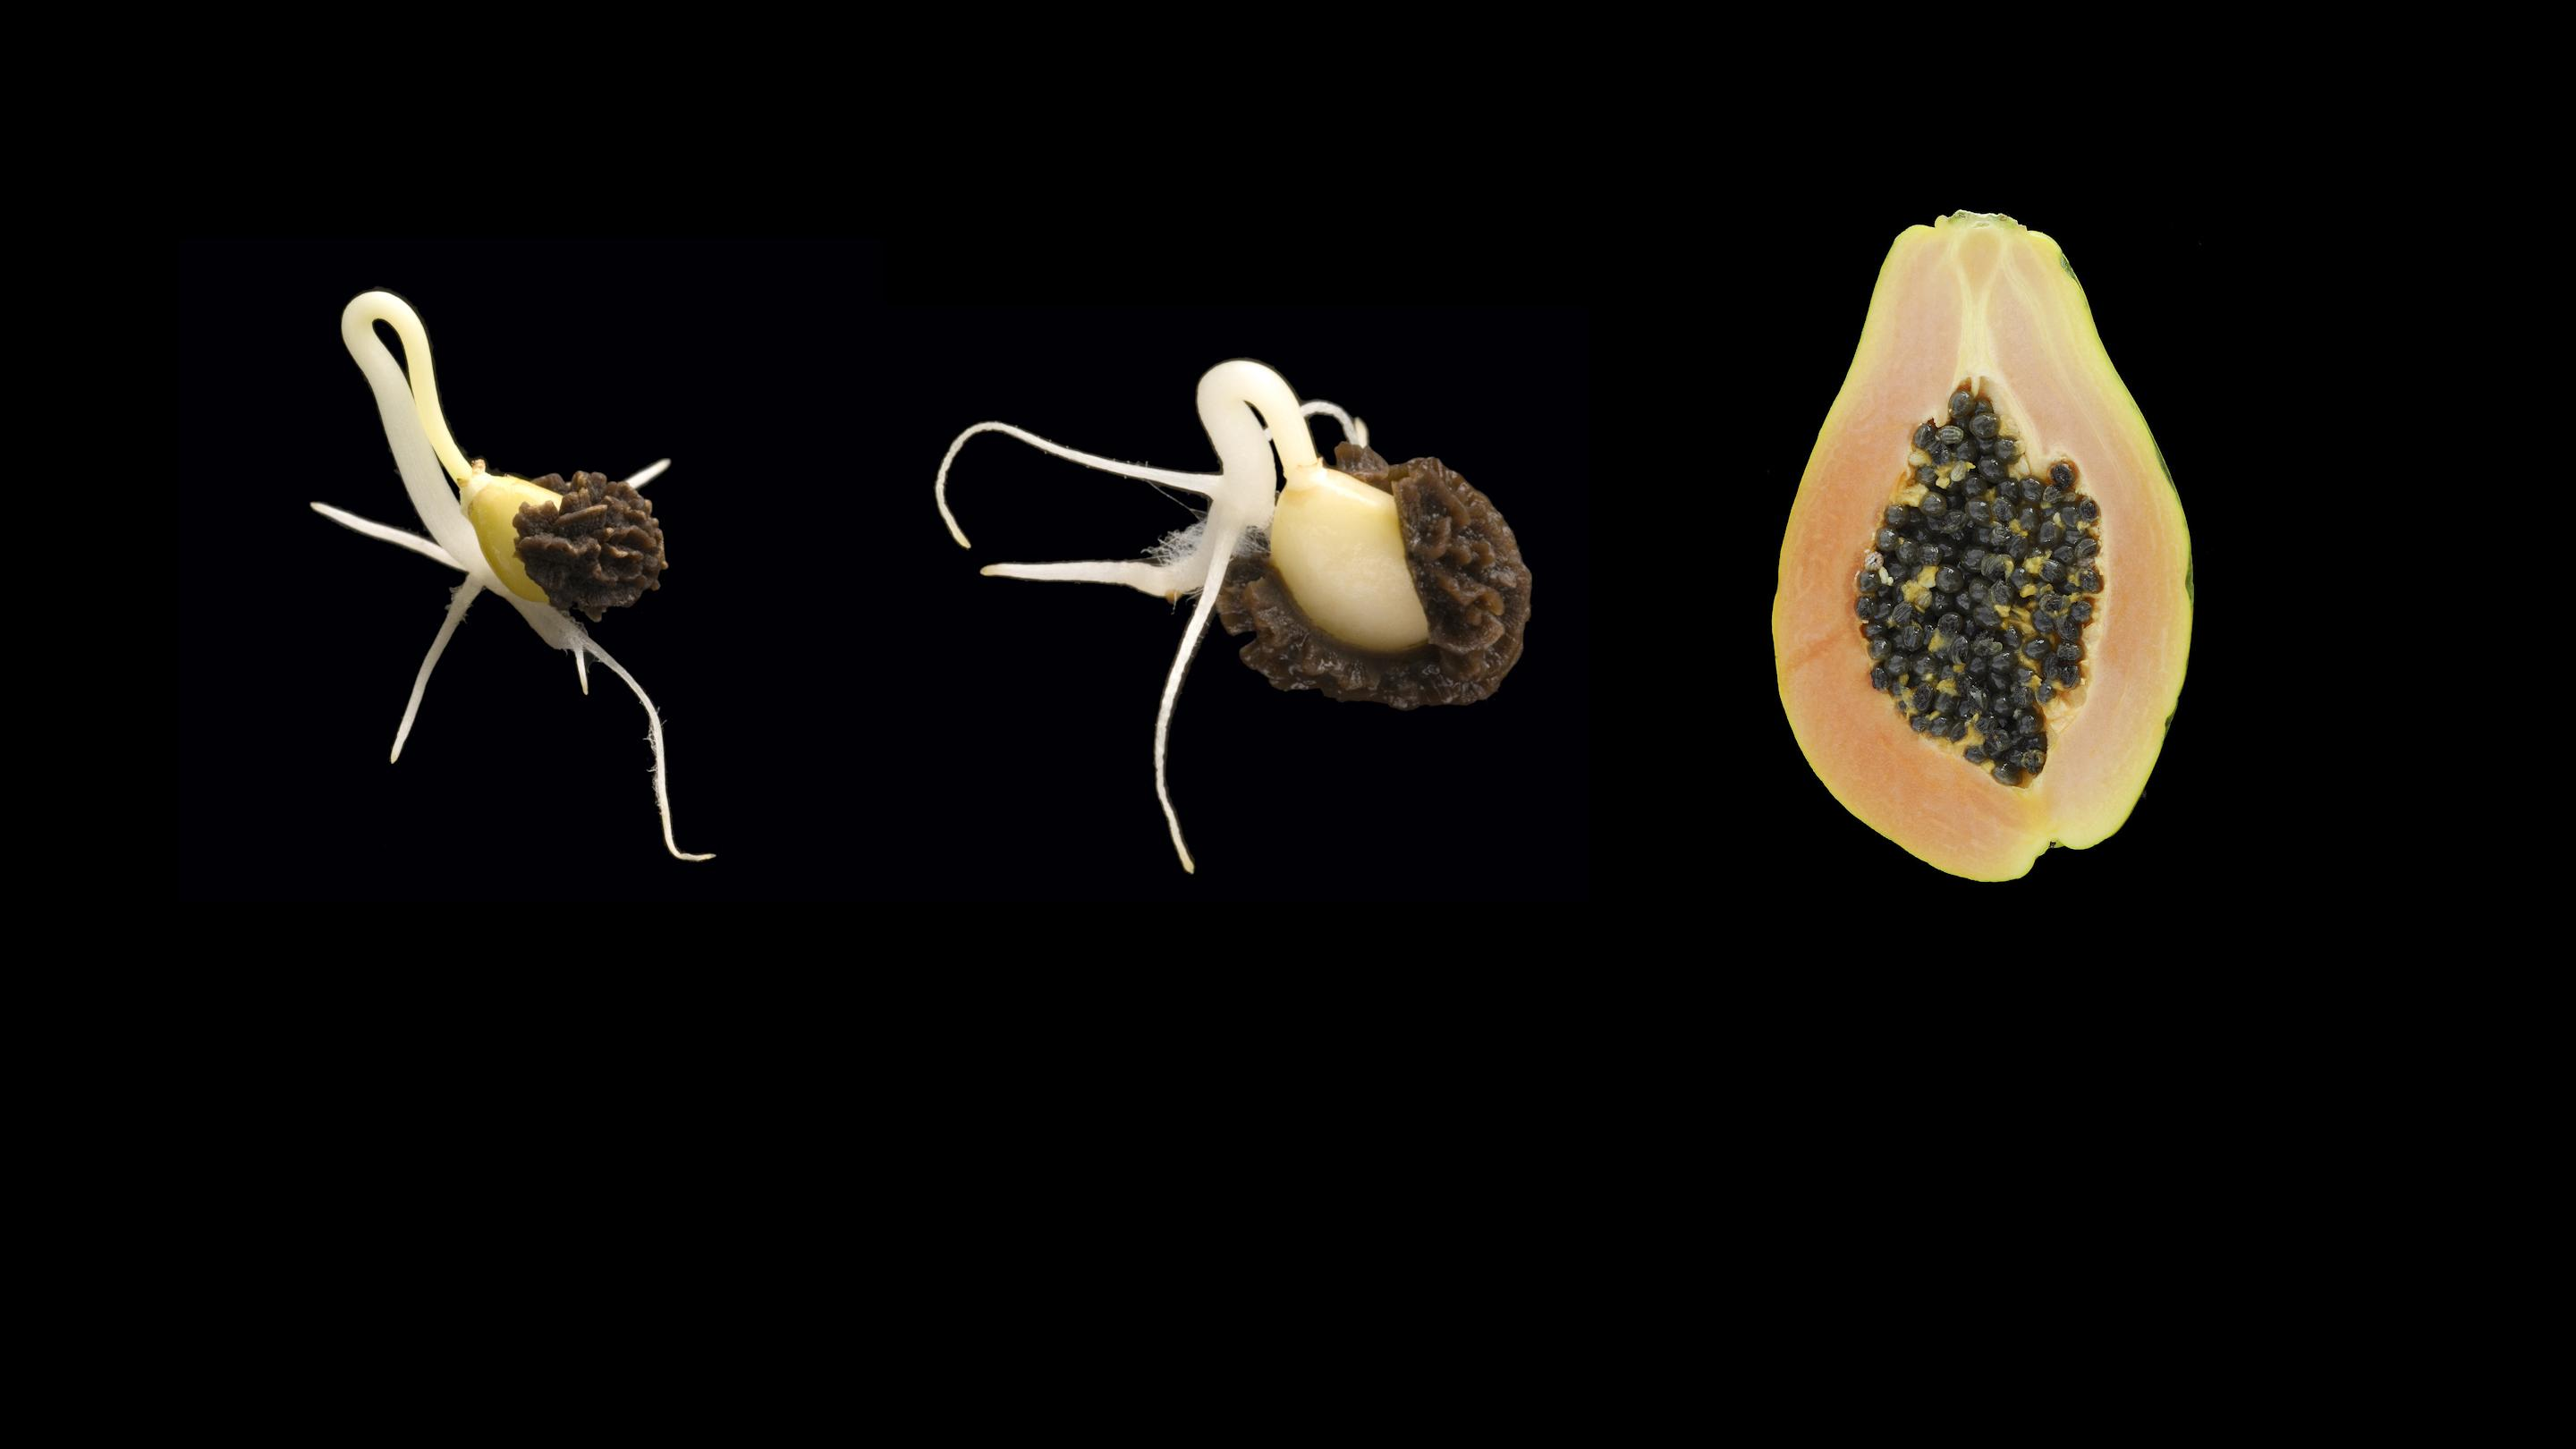 Fruit and germinating seed of Carica papaya